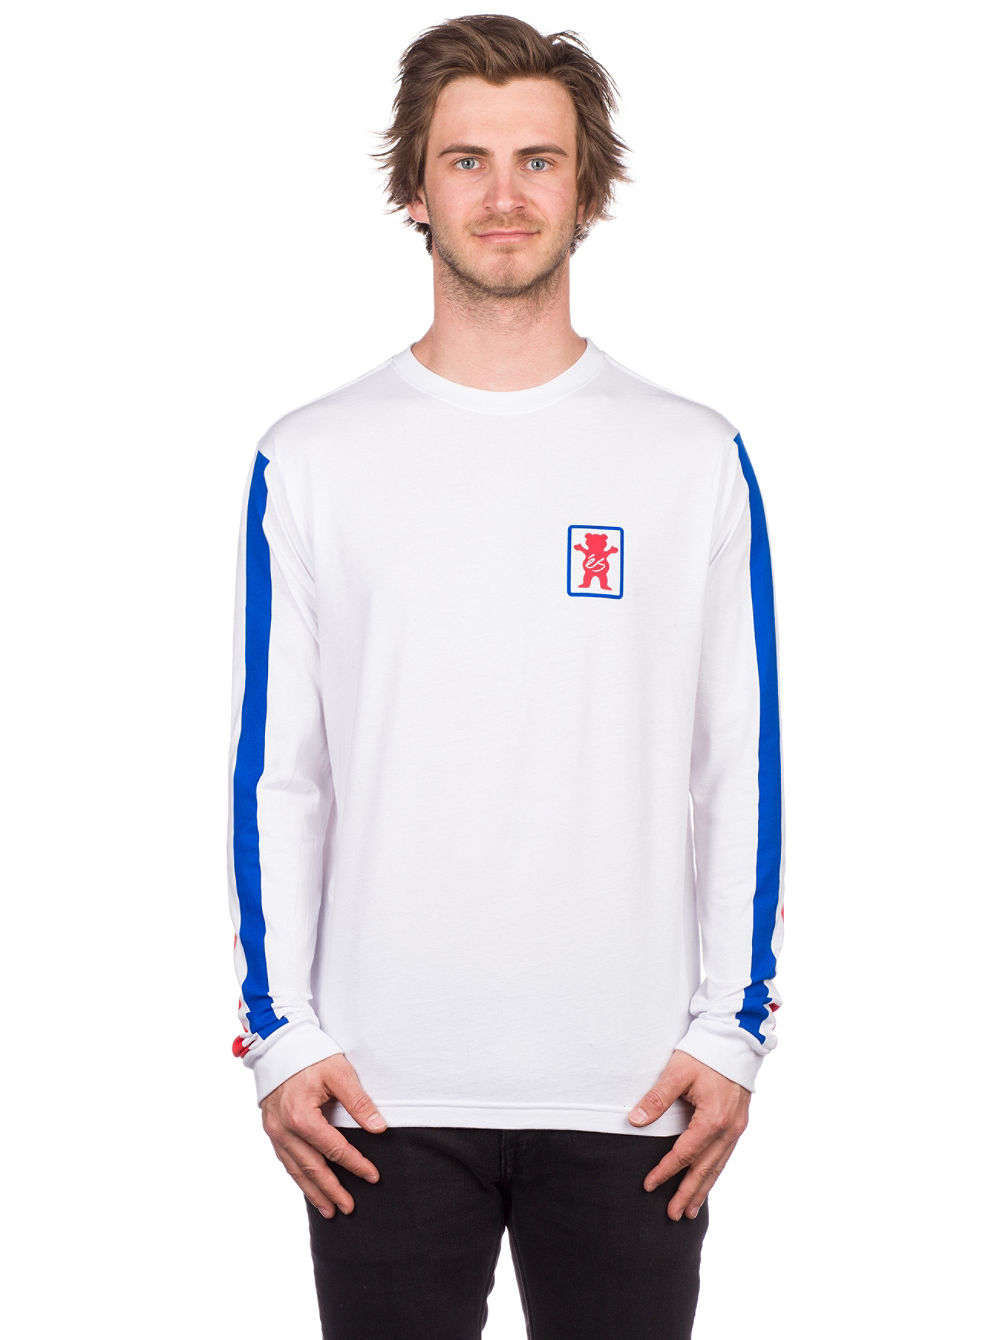 X Grizzly Racquet Long Sleeve T-Shirt